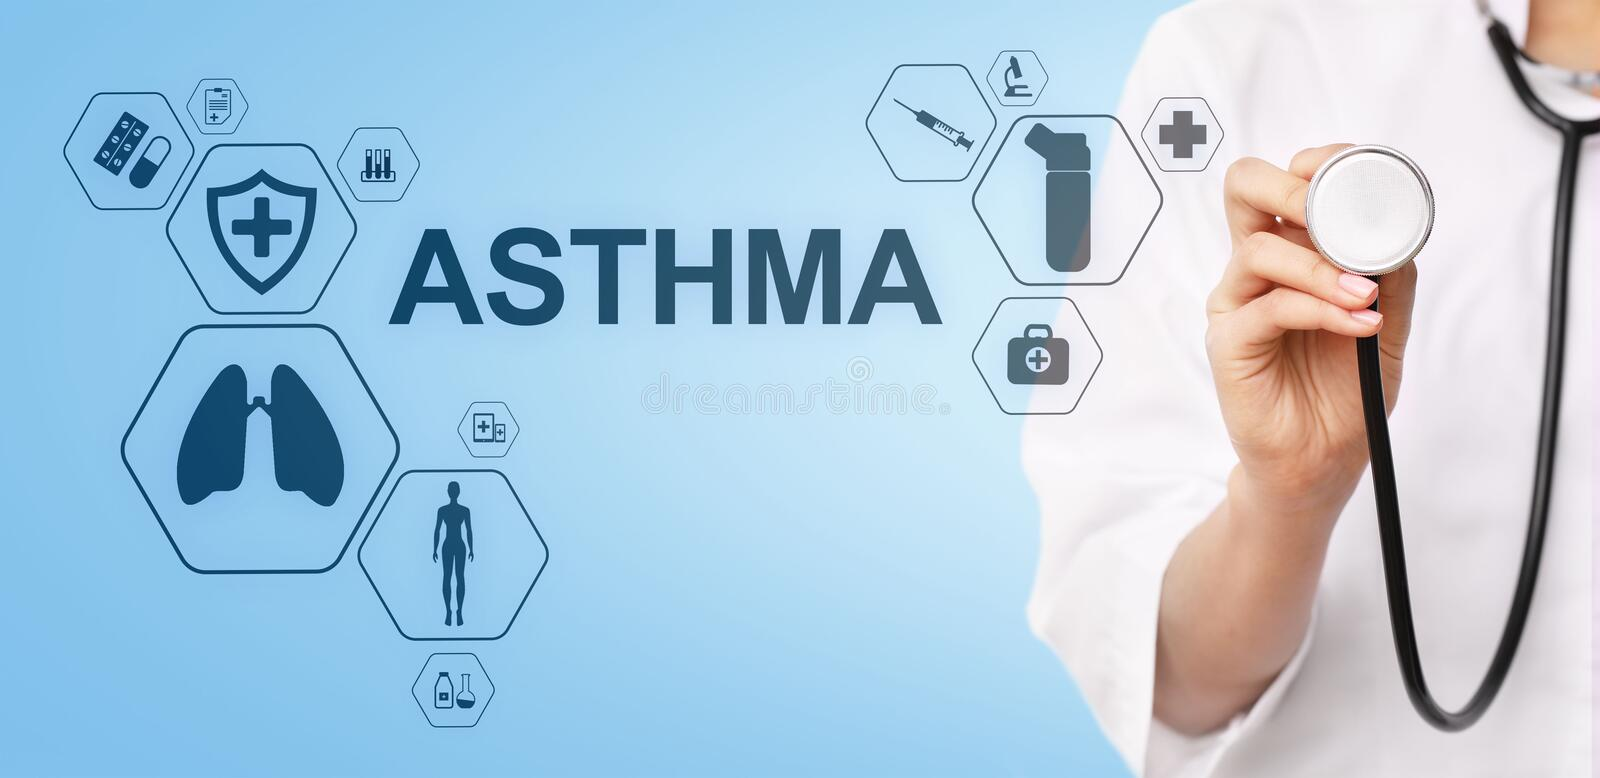 Asthma diagnosis, medical doctor with stethoscope and virtual screen. Modern medical concept. vector illustration